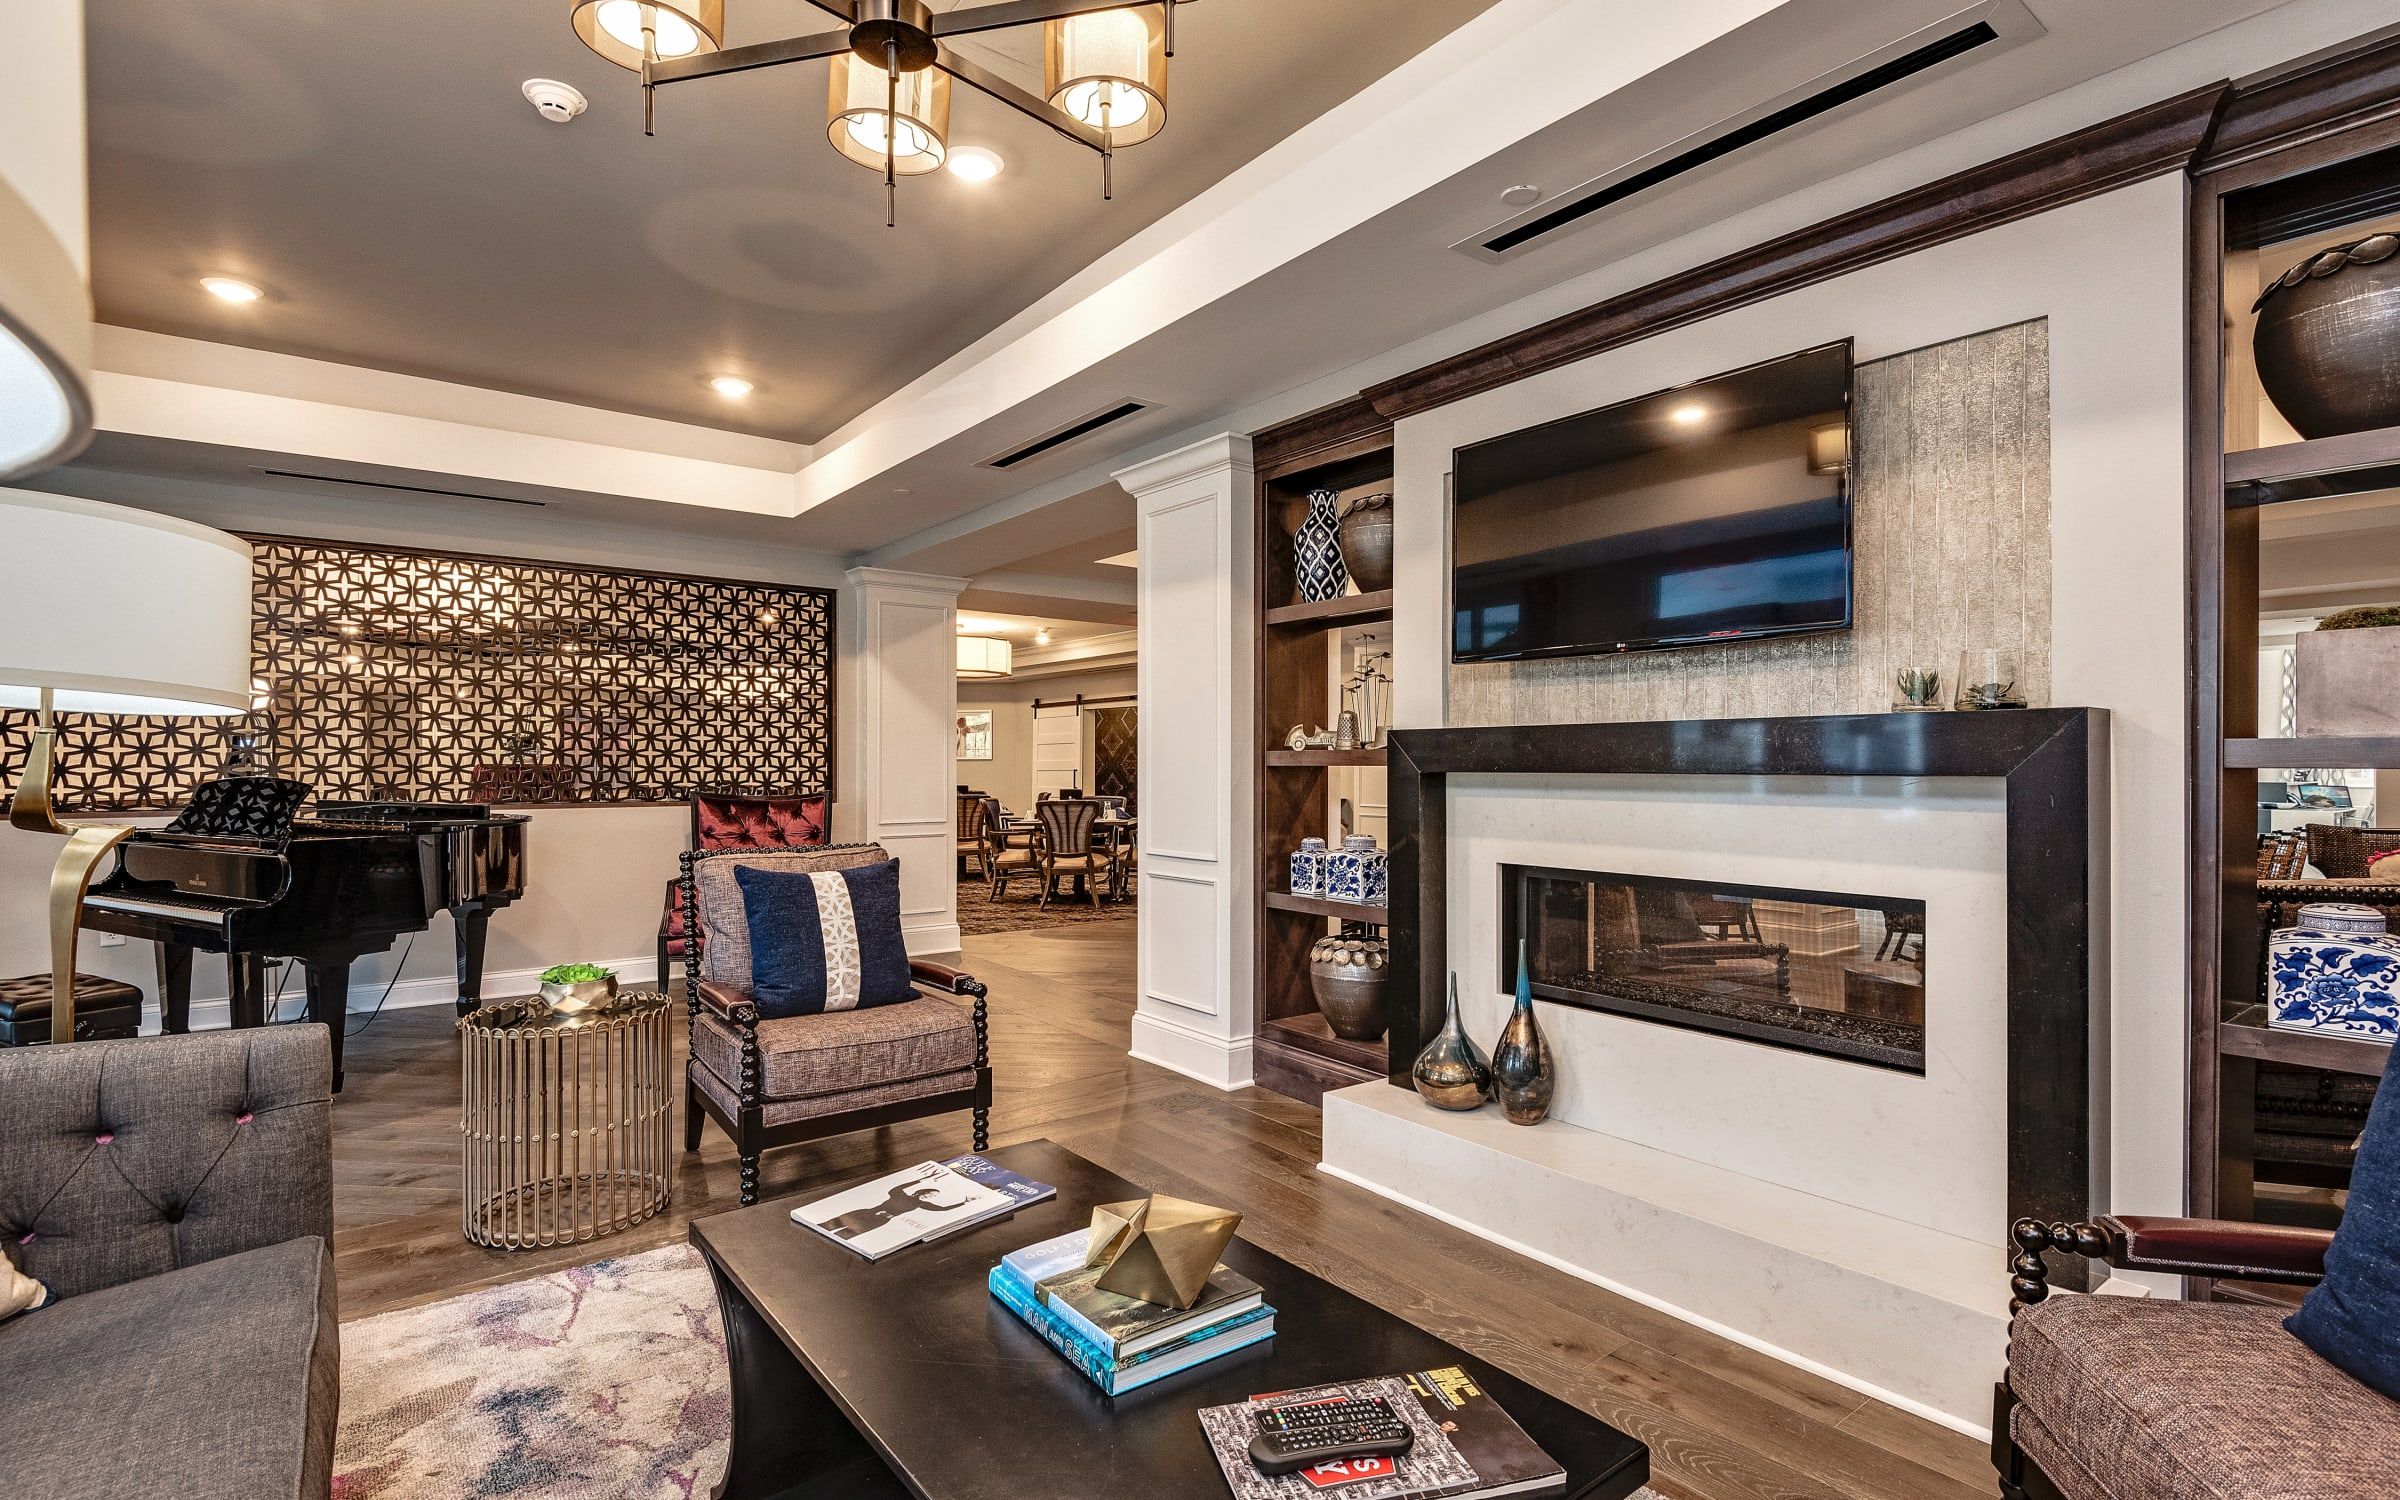 Exclusive offers at Anthology of Meridian Hills in Indianapolis, Indiana.